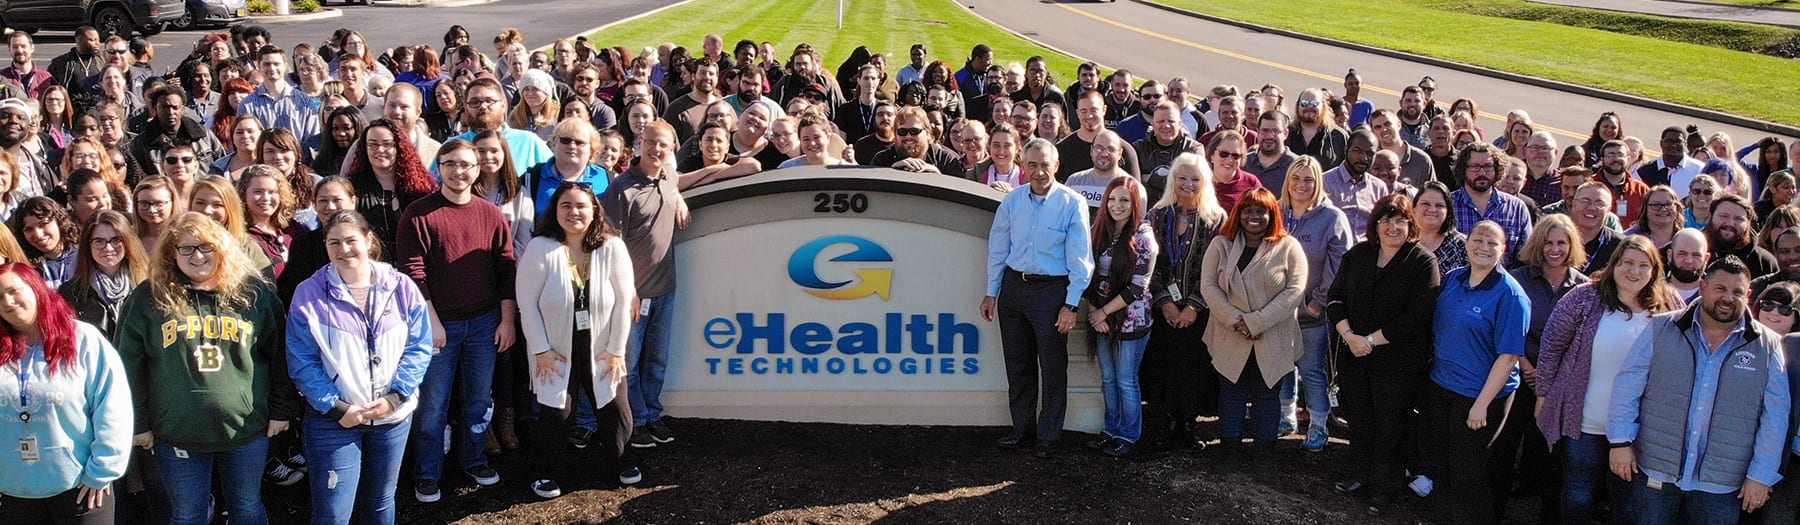 eHealth Company Employees